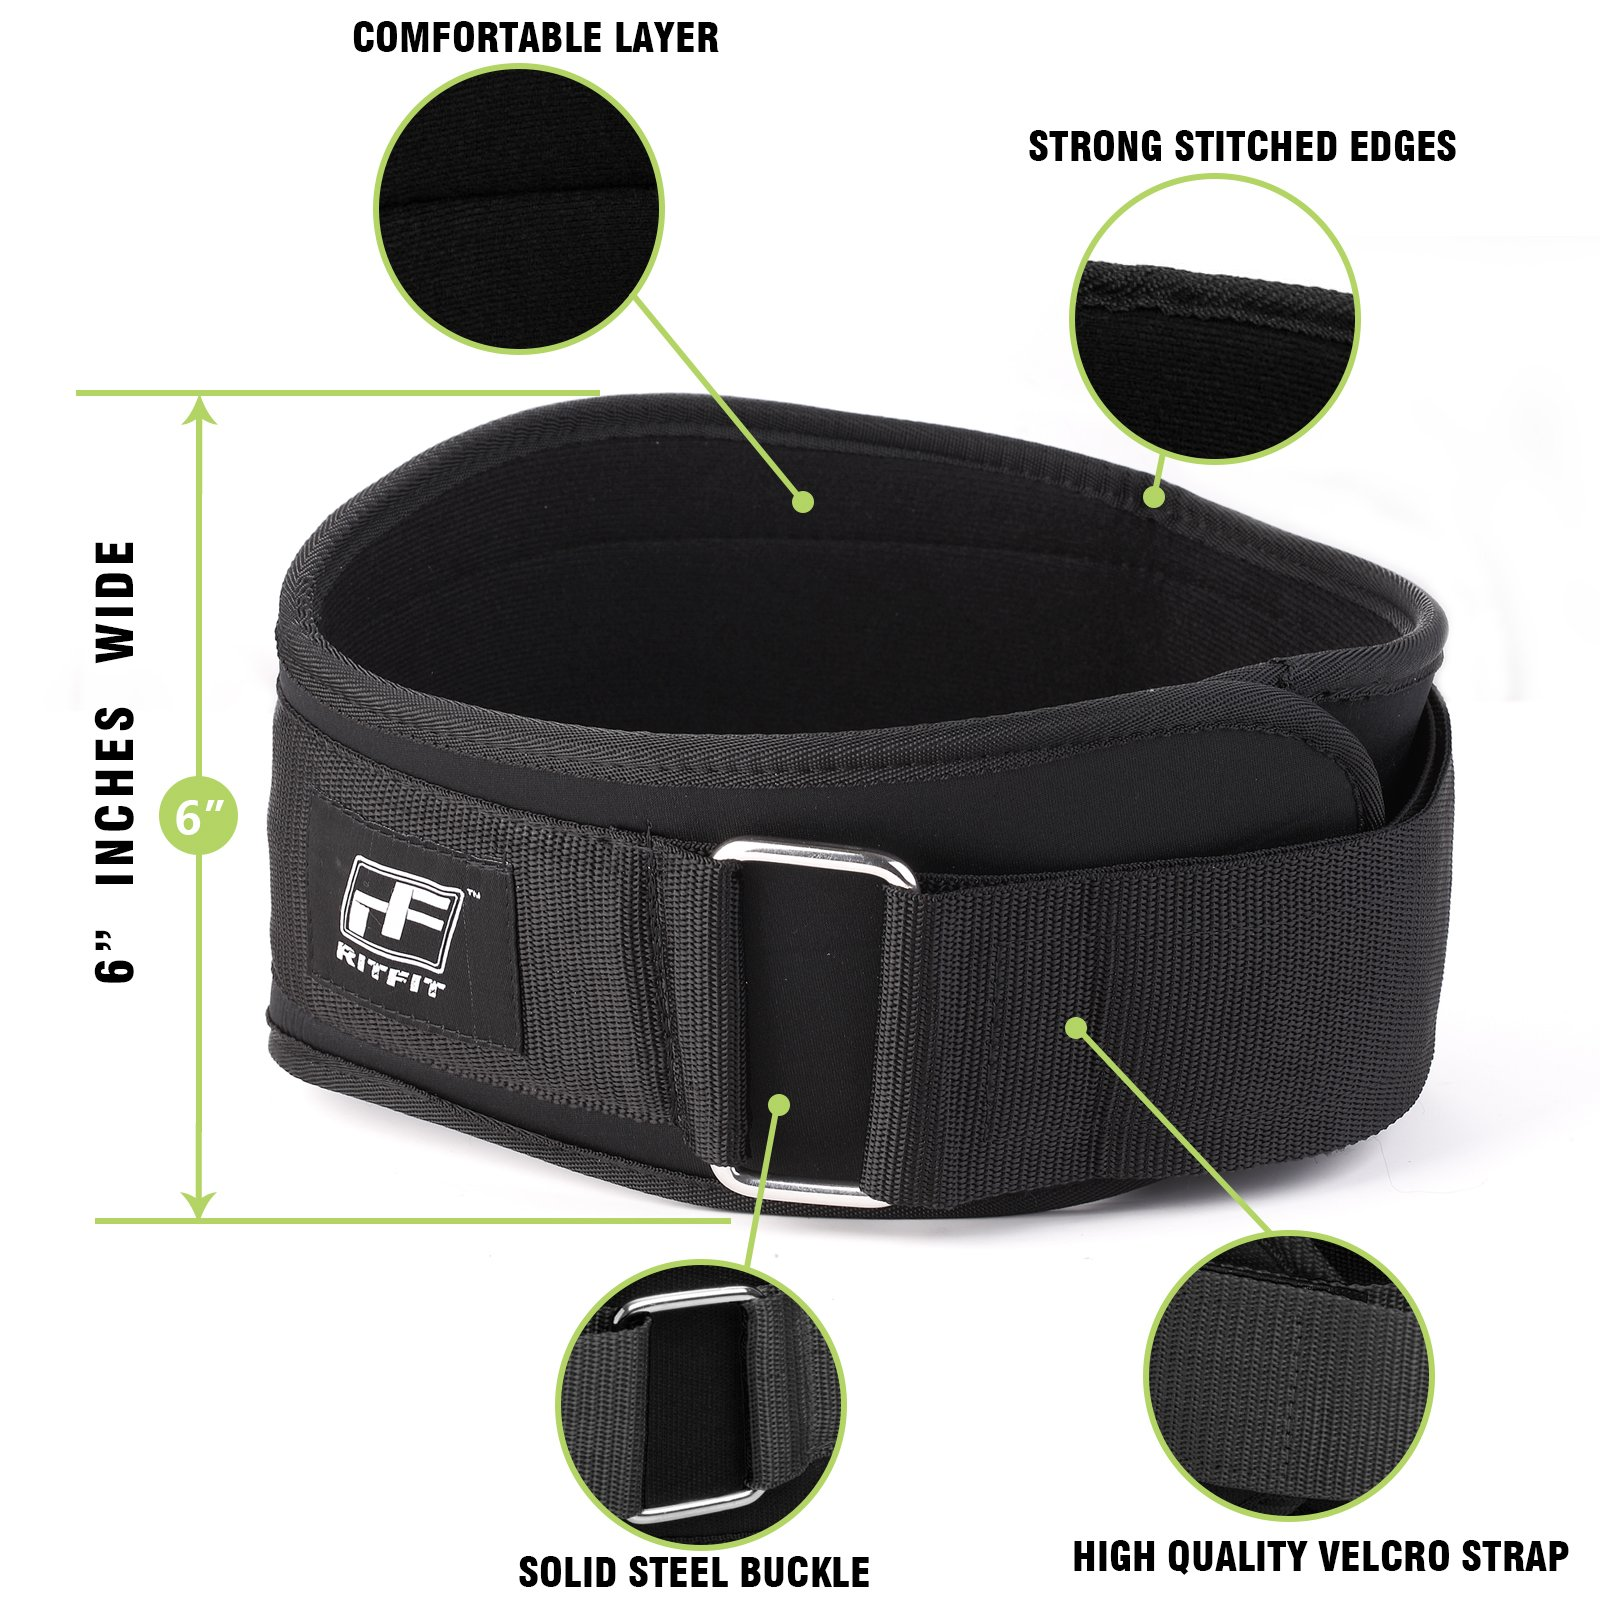 RitFit Weight Lifting Belt - Great for Squats, Clean, Lunges, Deadlift, Thrusters - Men and Women - 6 Inch - Multiple Color Choices - Firm & Comfortable Lumbar Support with Back Injury Protection by RitFit (Image #4)